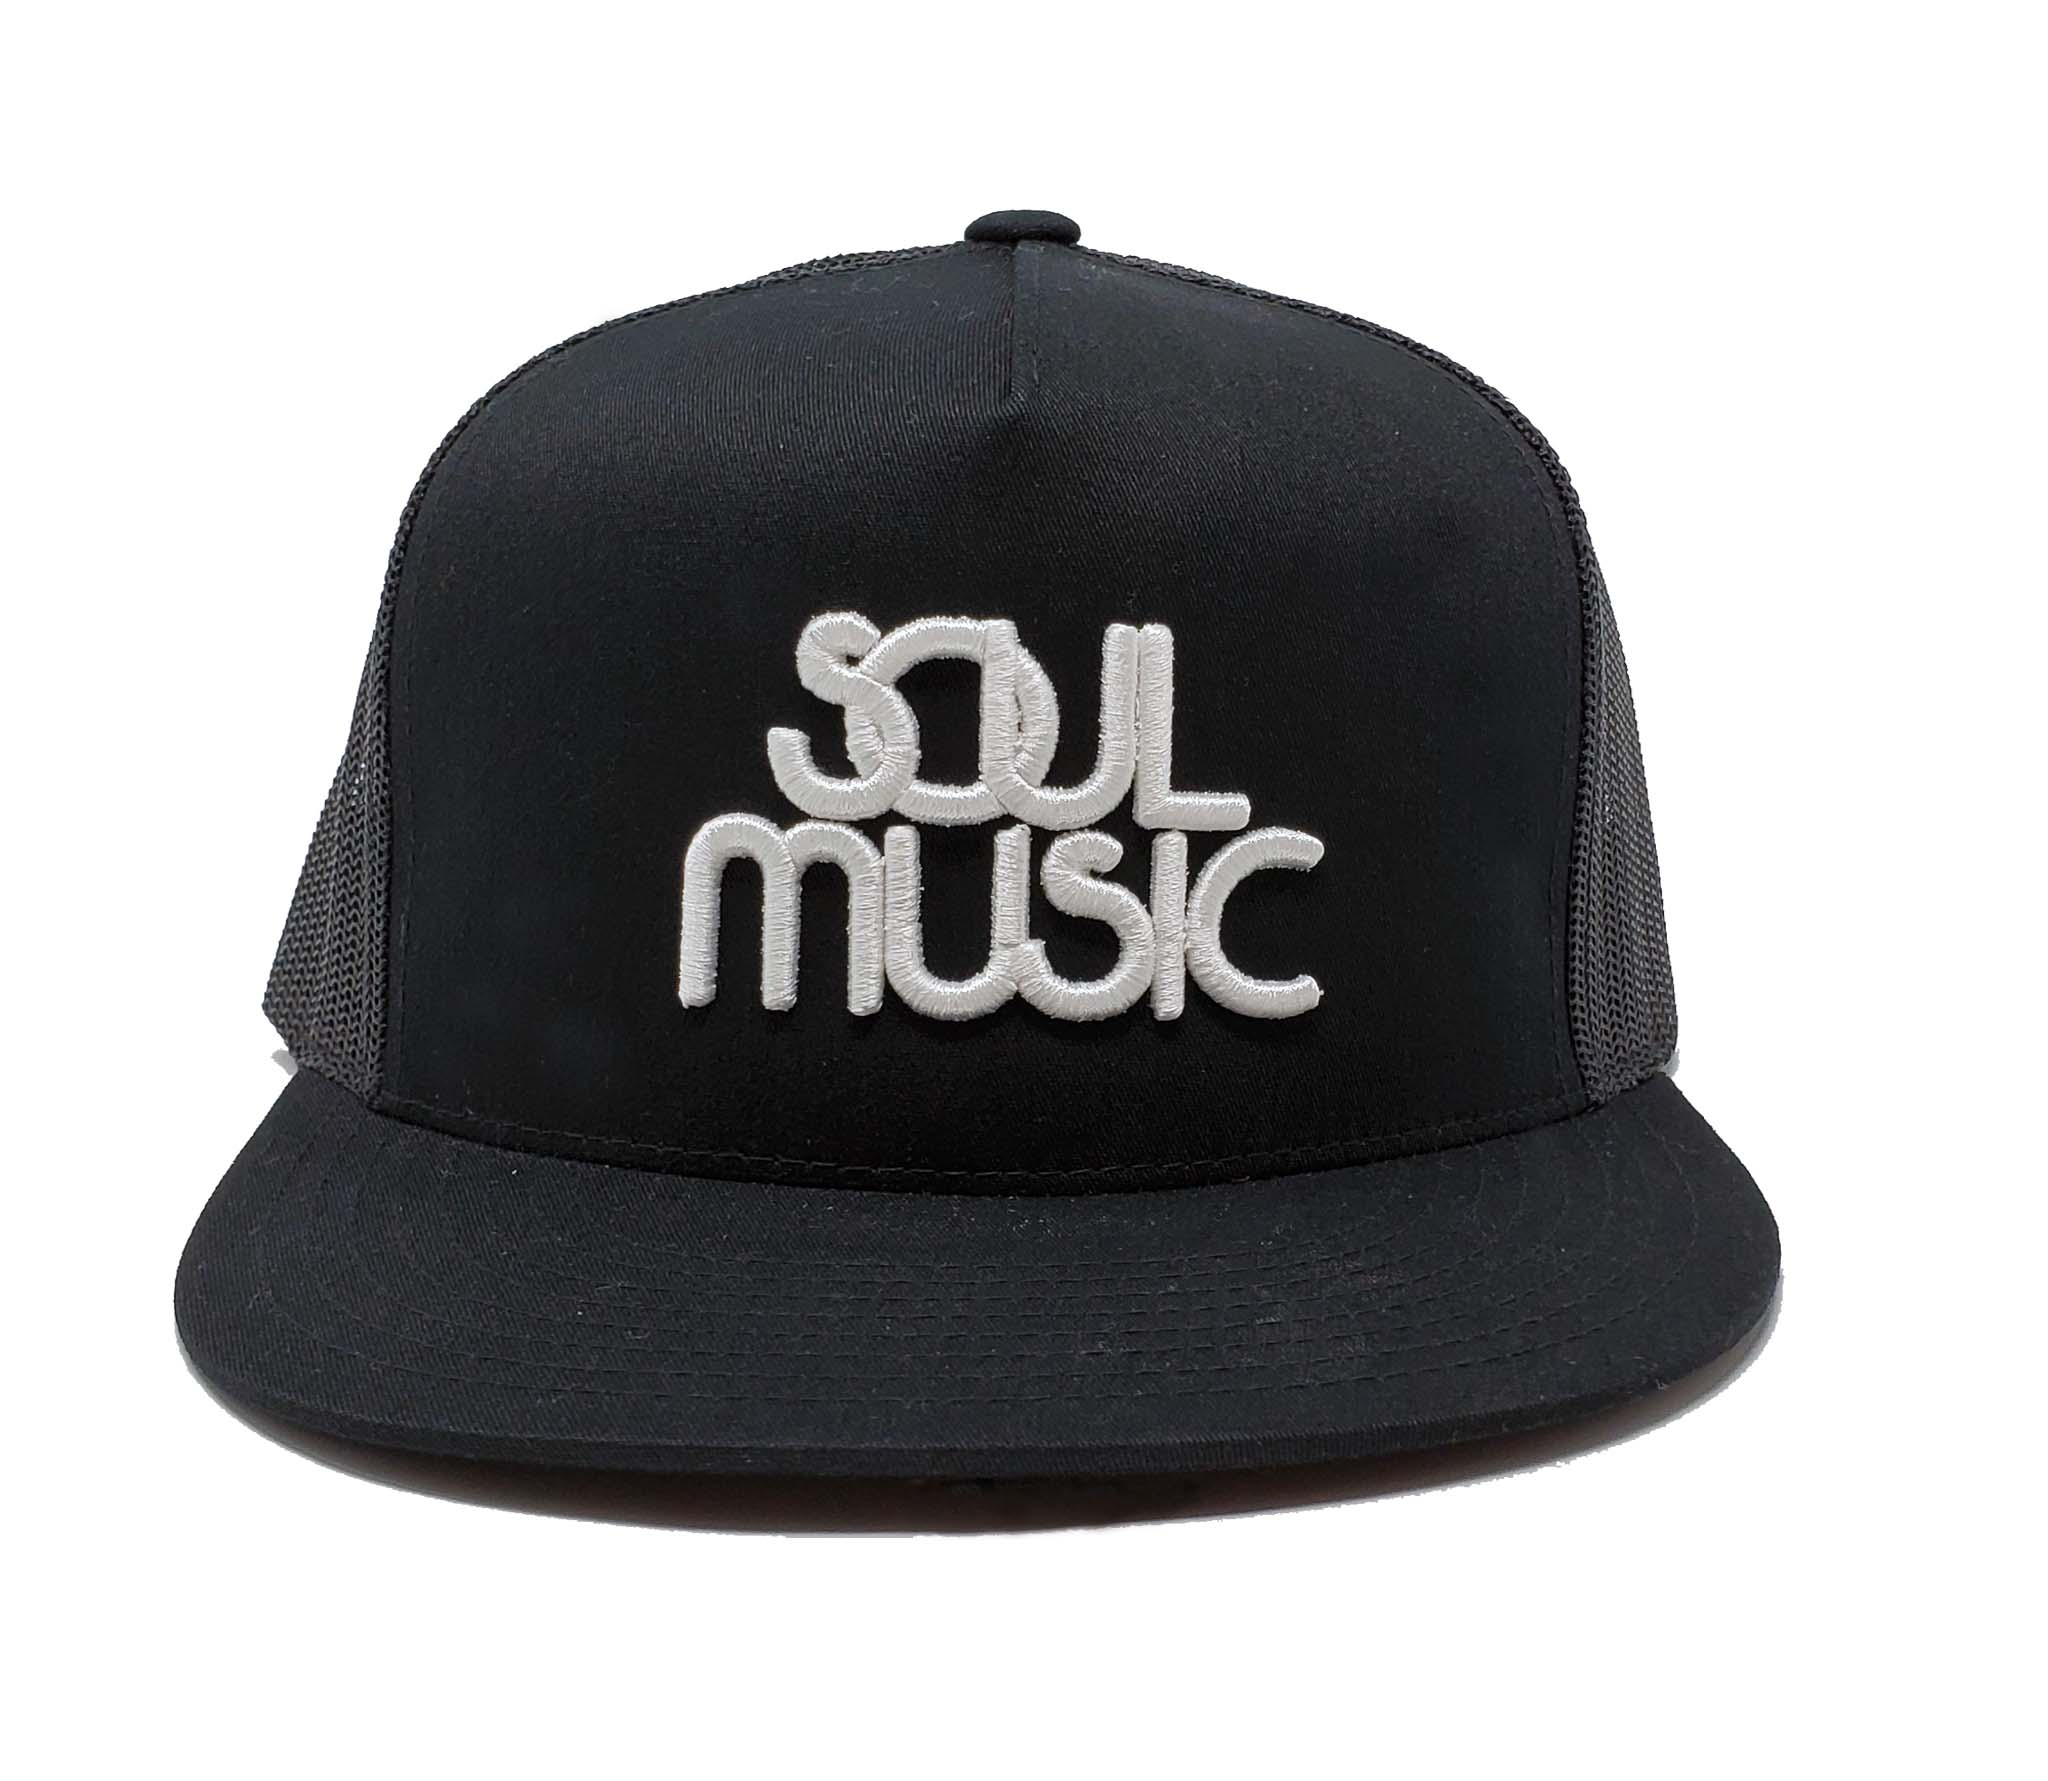 Soul Music Black and White Mesh Trucker Cap